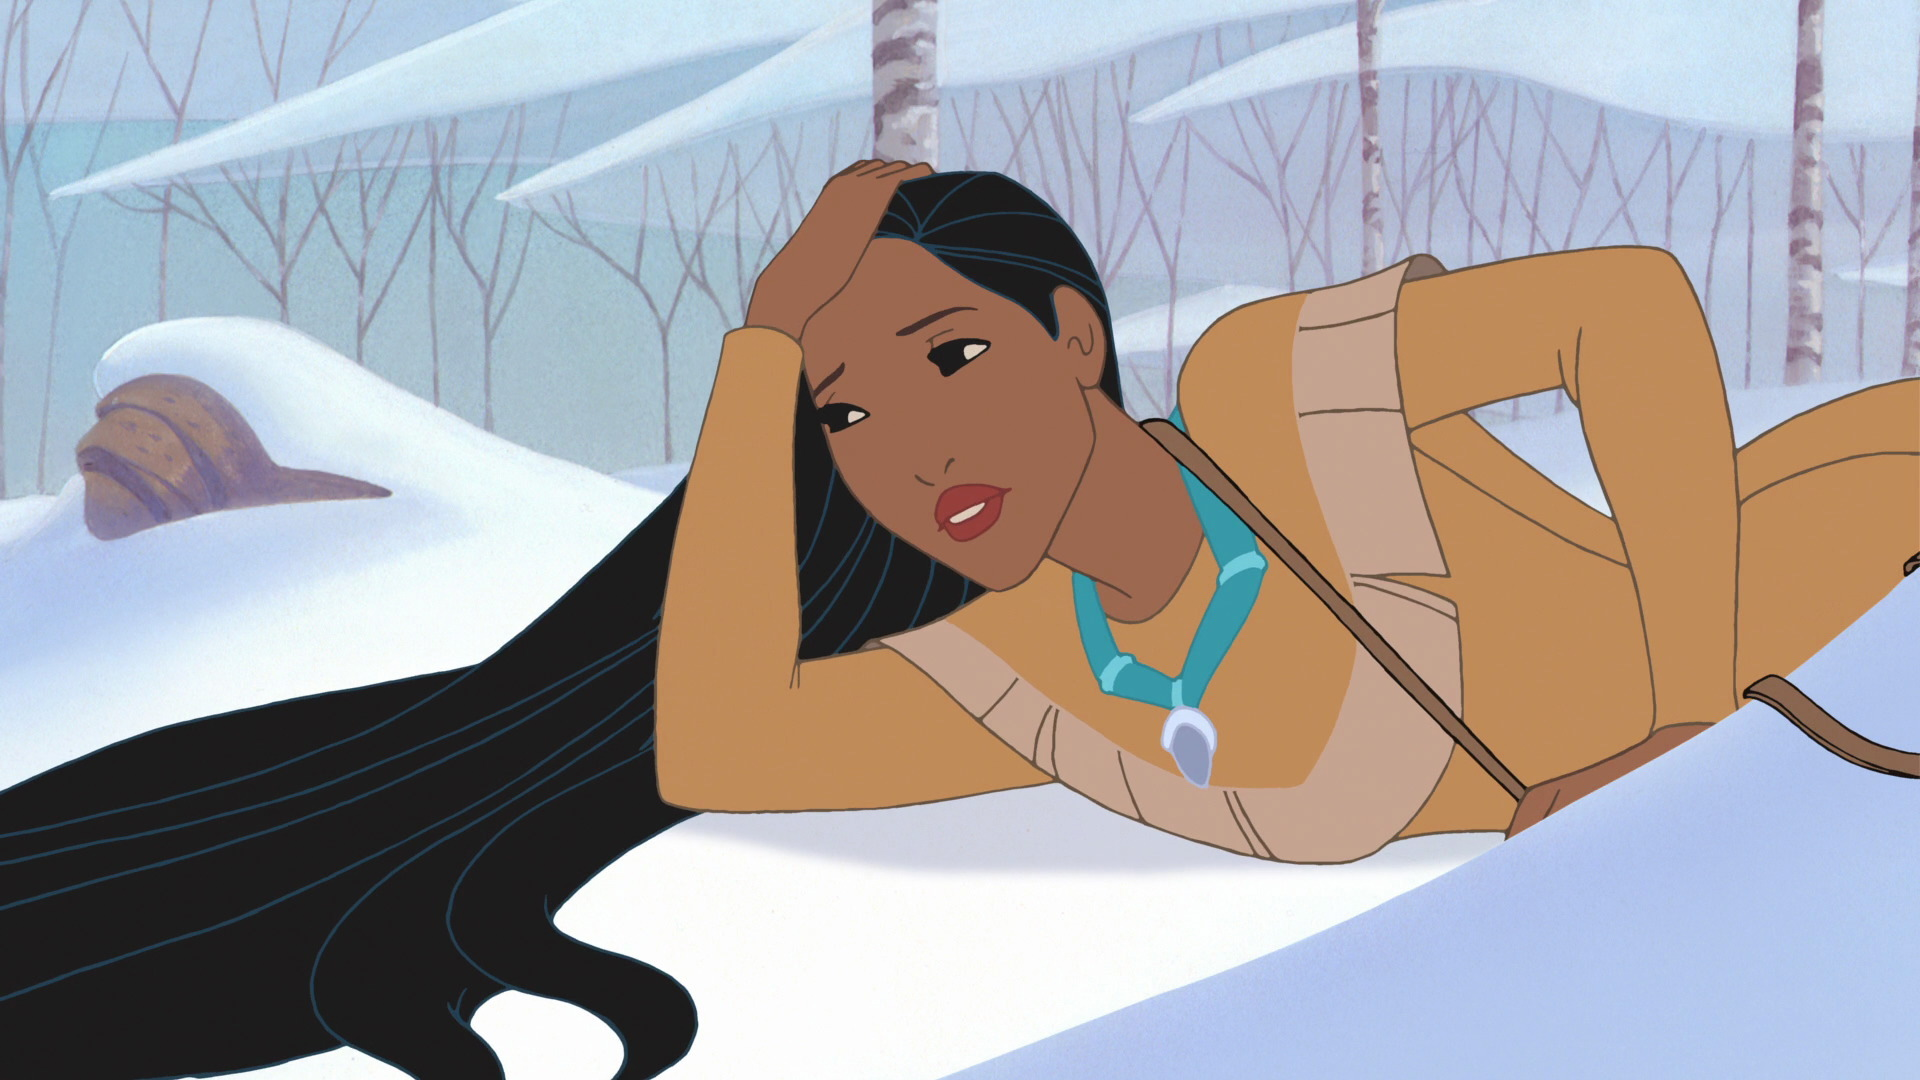 a review of the disney movie pocahontas Pocahontas is a 1995 american animated musical romantic drama film produced by walt disney feature animation for walt disney pictures the 33rd disney animated feature film , it was directed by mike gabriel and eric goldberg and is loosely based on the life of the native american woman of the same name.